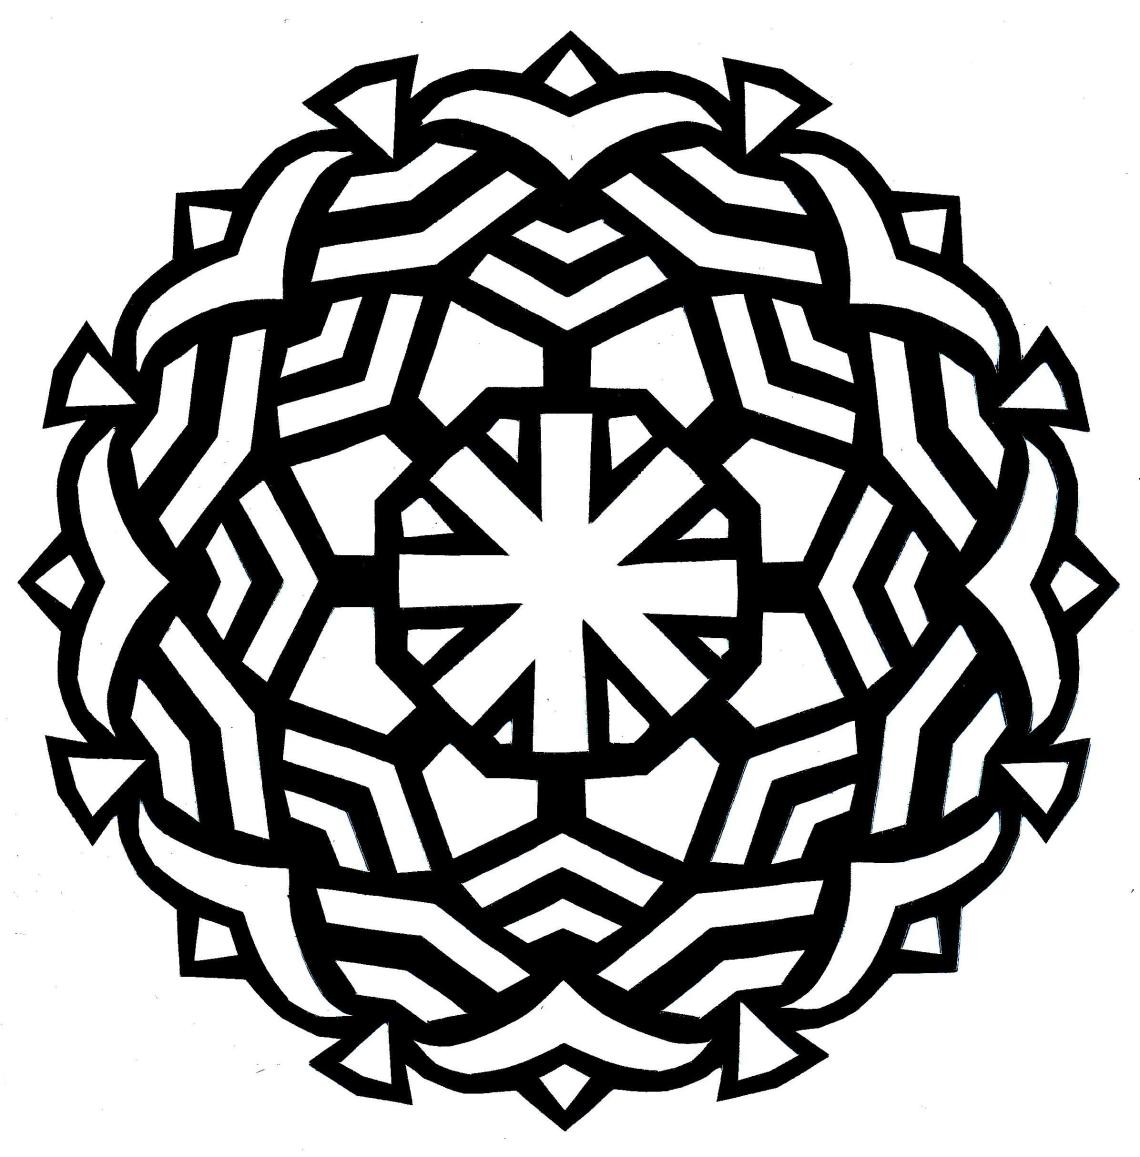 Simple mandala coloring pages download and print for free   free printable mandala coloring pages for adults easy